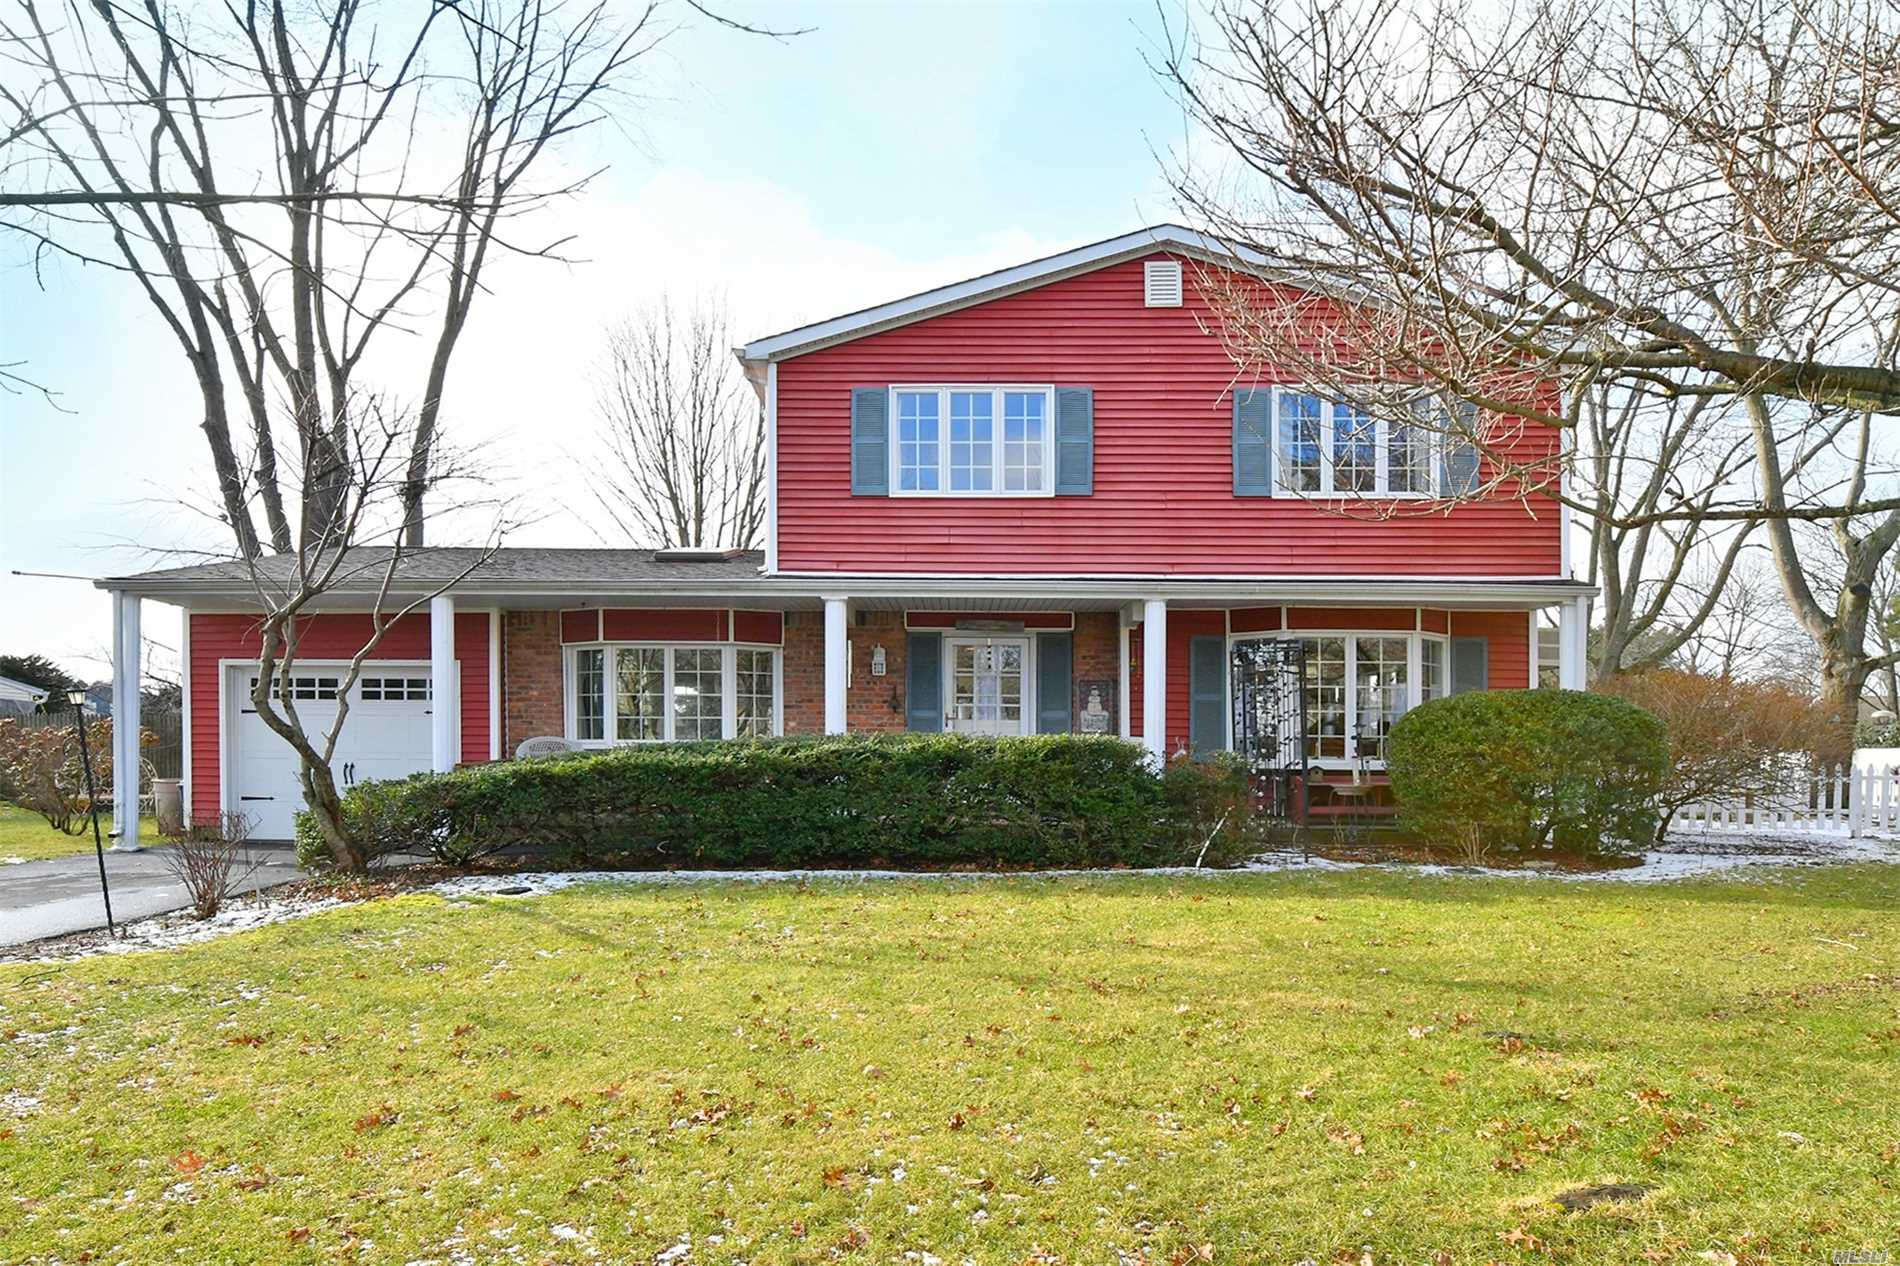 Welcome To This Sun-Drenched, Well-Loved, Inviting Home On One Of The Prettiest Streets In Old Medford. Windows Galore Surround This Lovely Dining Room And Stylish Farmhouse Kitchen. Featuring A Wide Open Floor Plan, Skylights In The Living Room, Andersen Windows, Separate Den With Fireplace And Sliders To The Backyard. Taxes With Basic Star $8, 865.48.